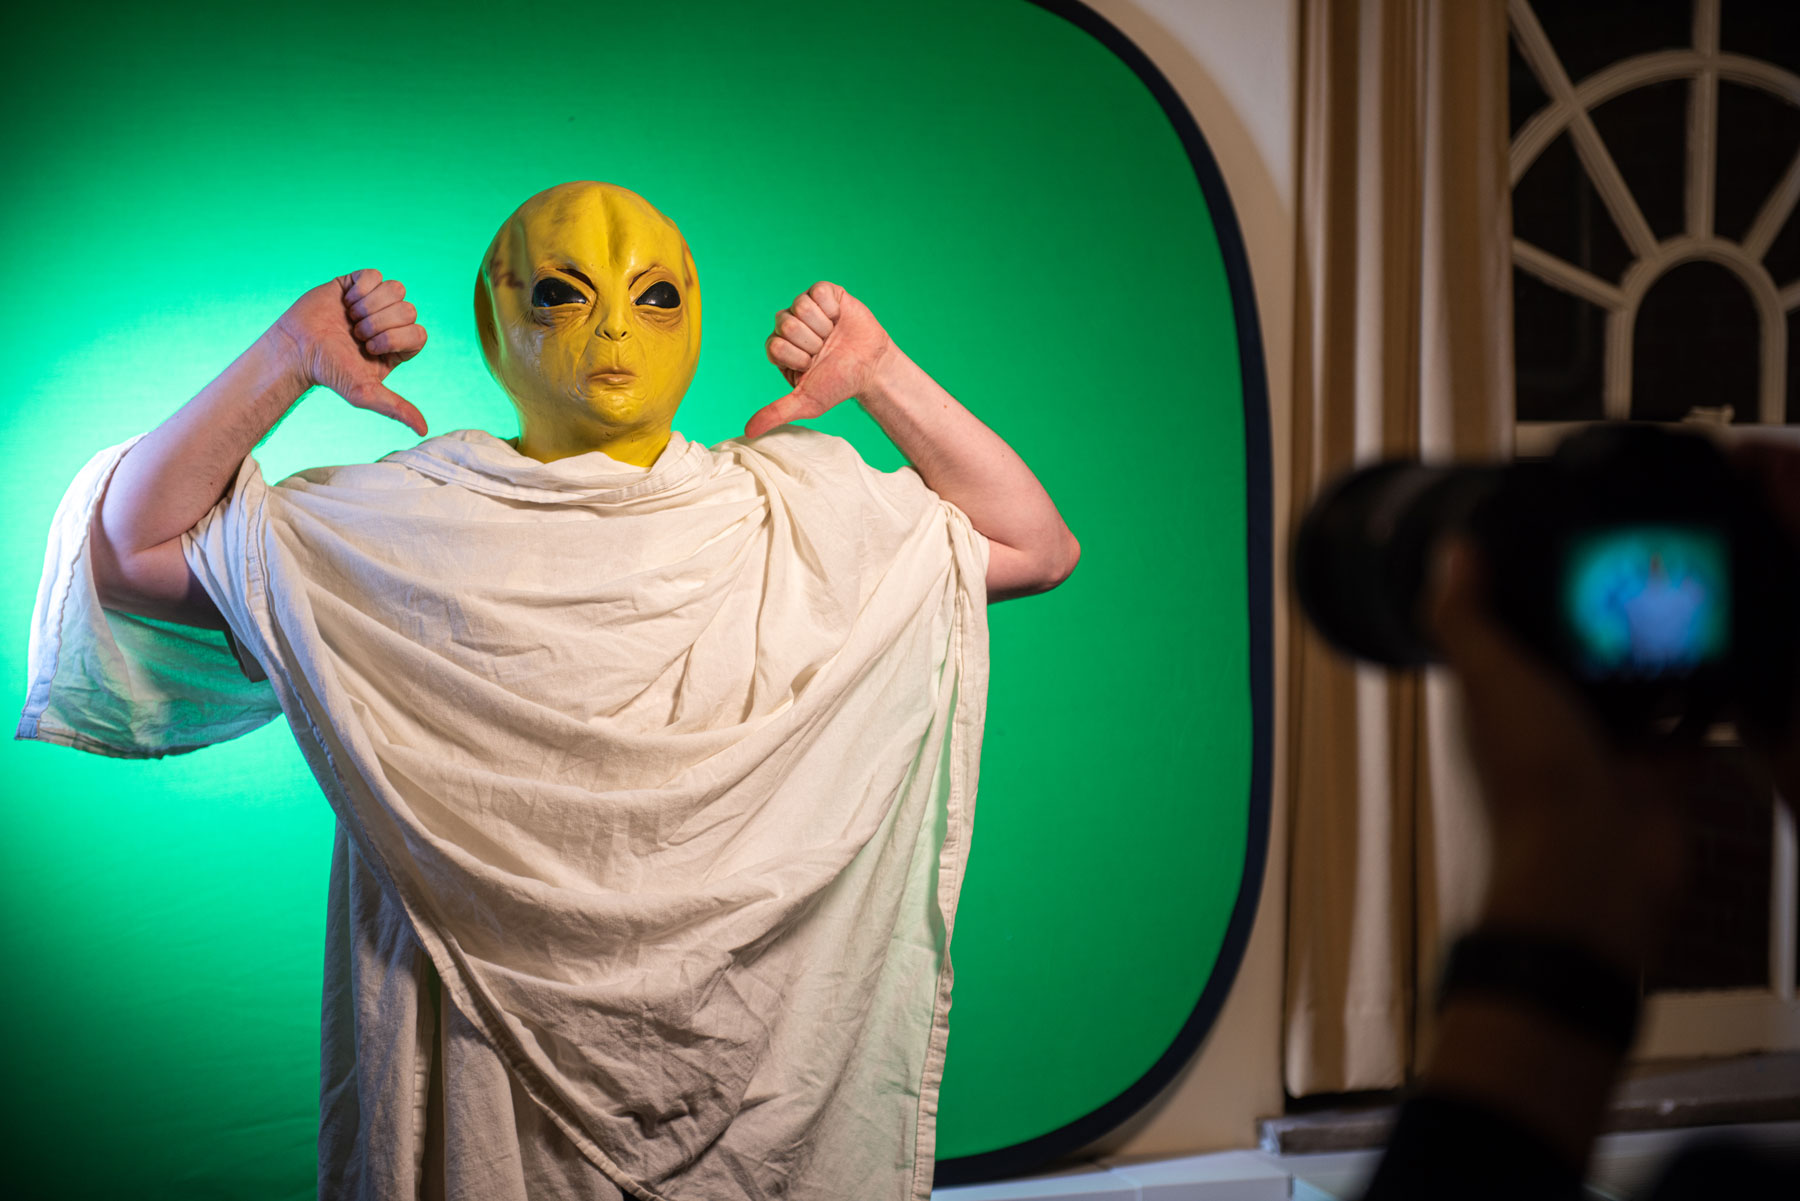 A person in an alien mask poses in front of a video green screen